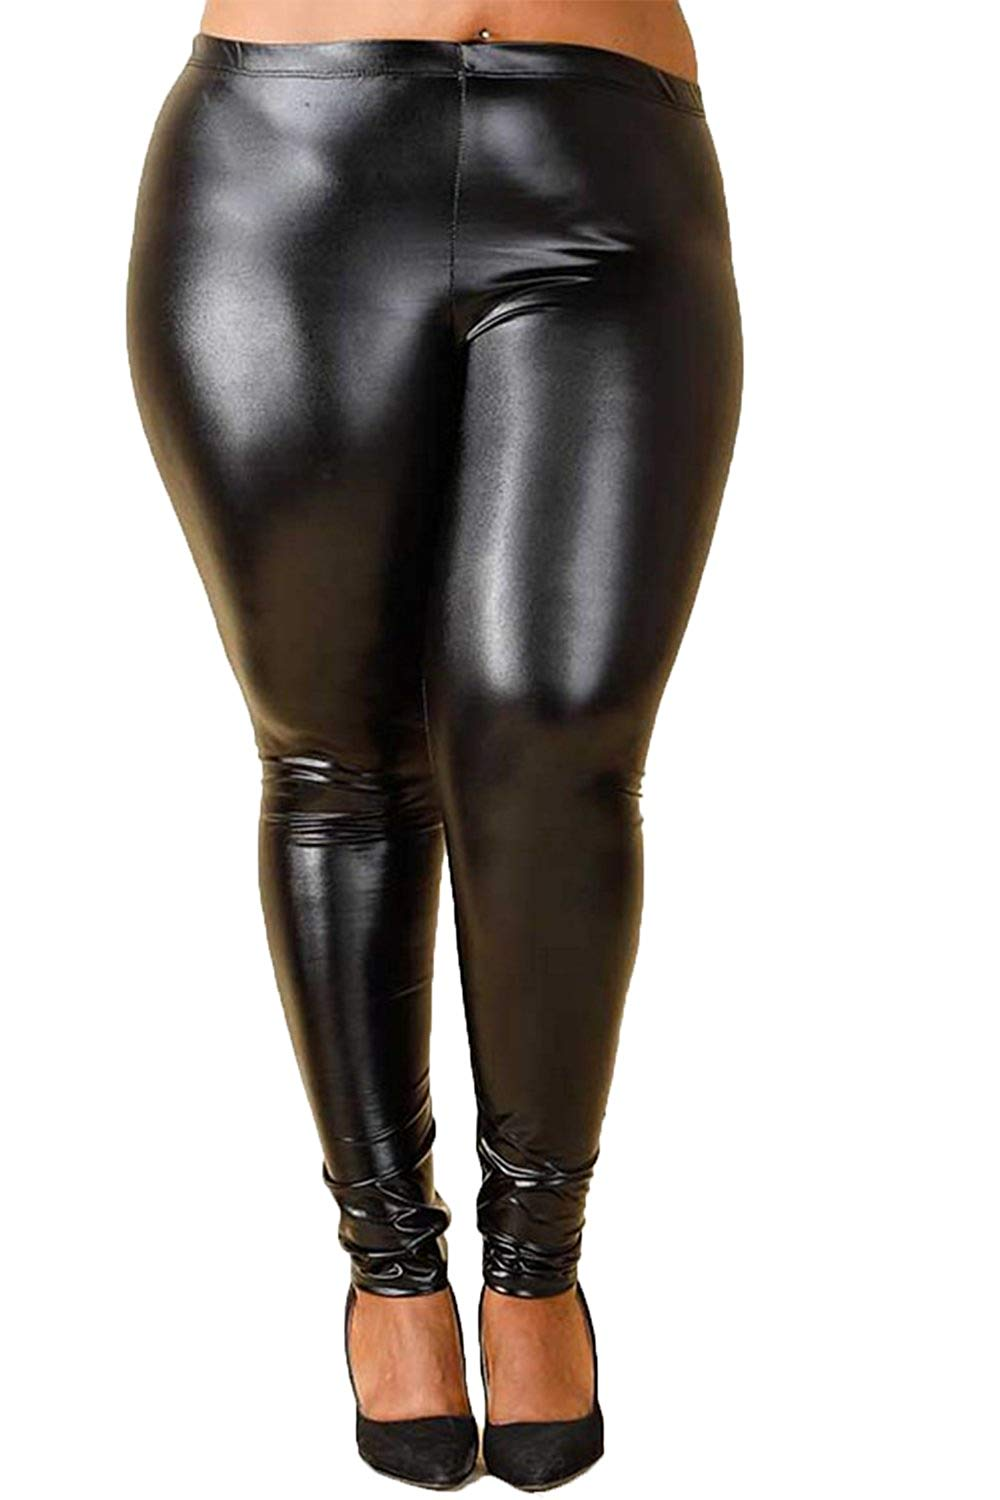 401ec7f448f Get Quotations · GENx Womens Plus Size Stretch Funky Metallic Disco PU Leggings  Pants GNP3888